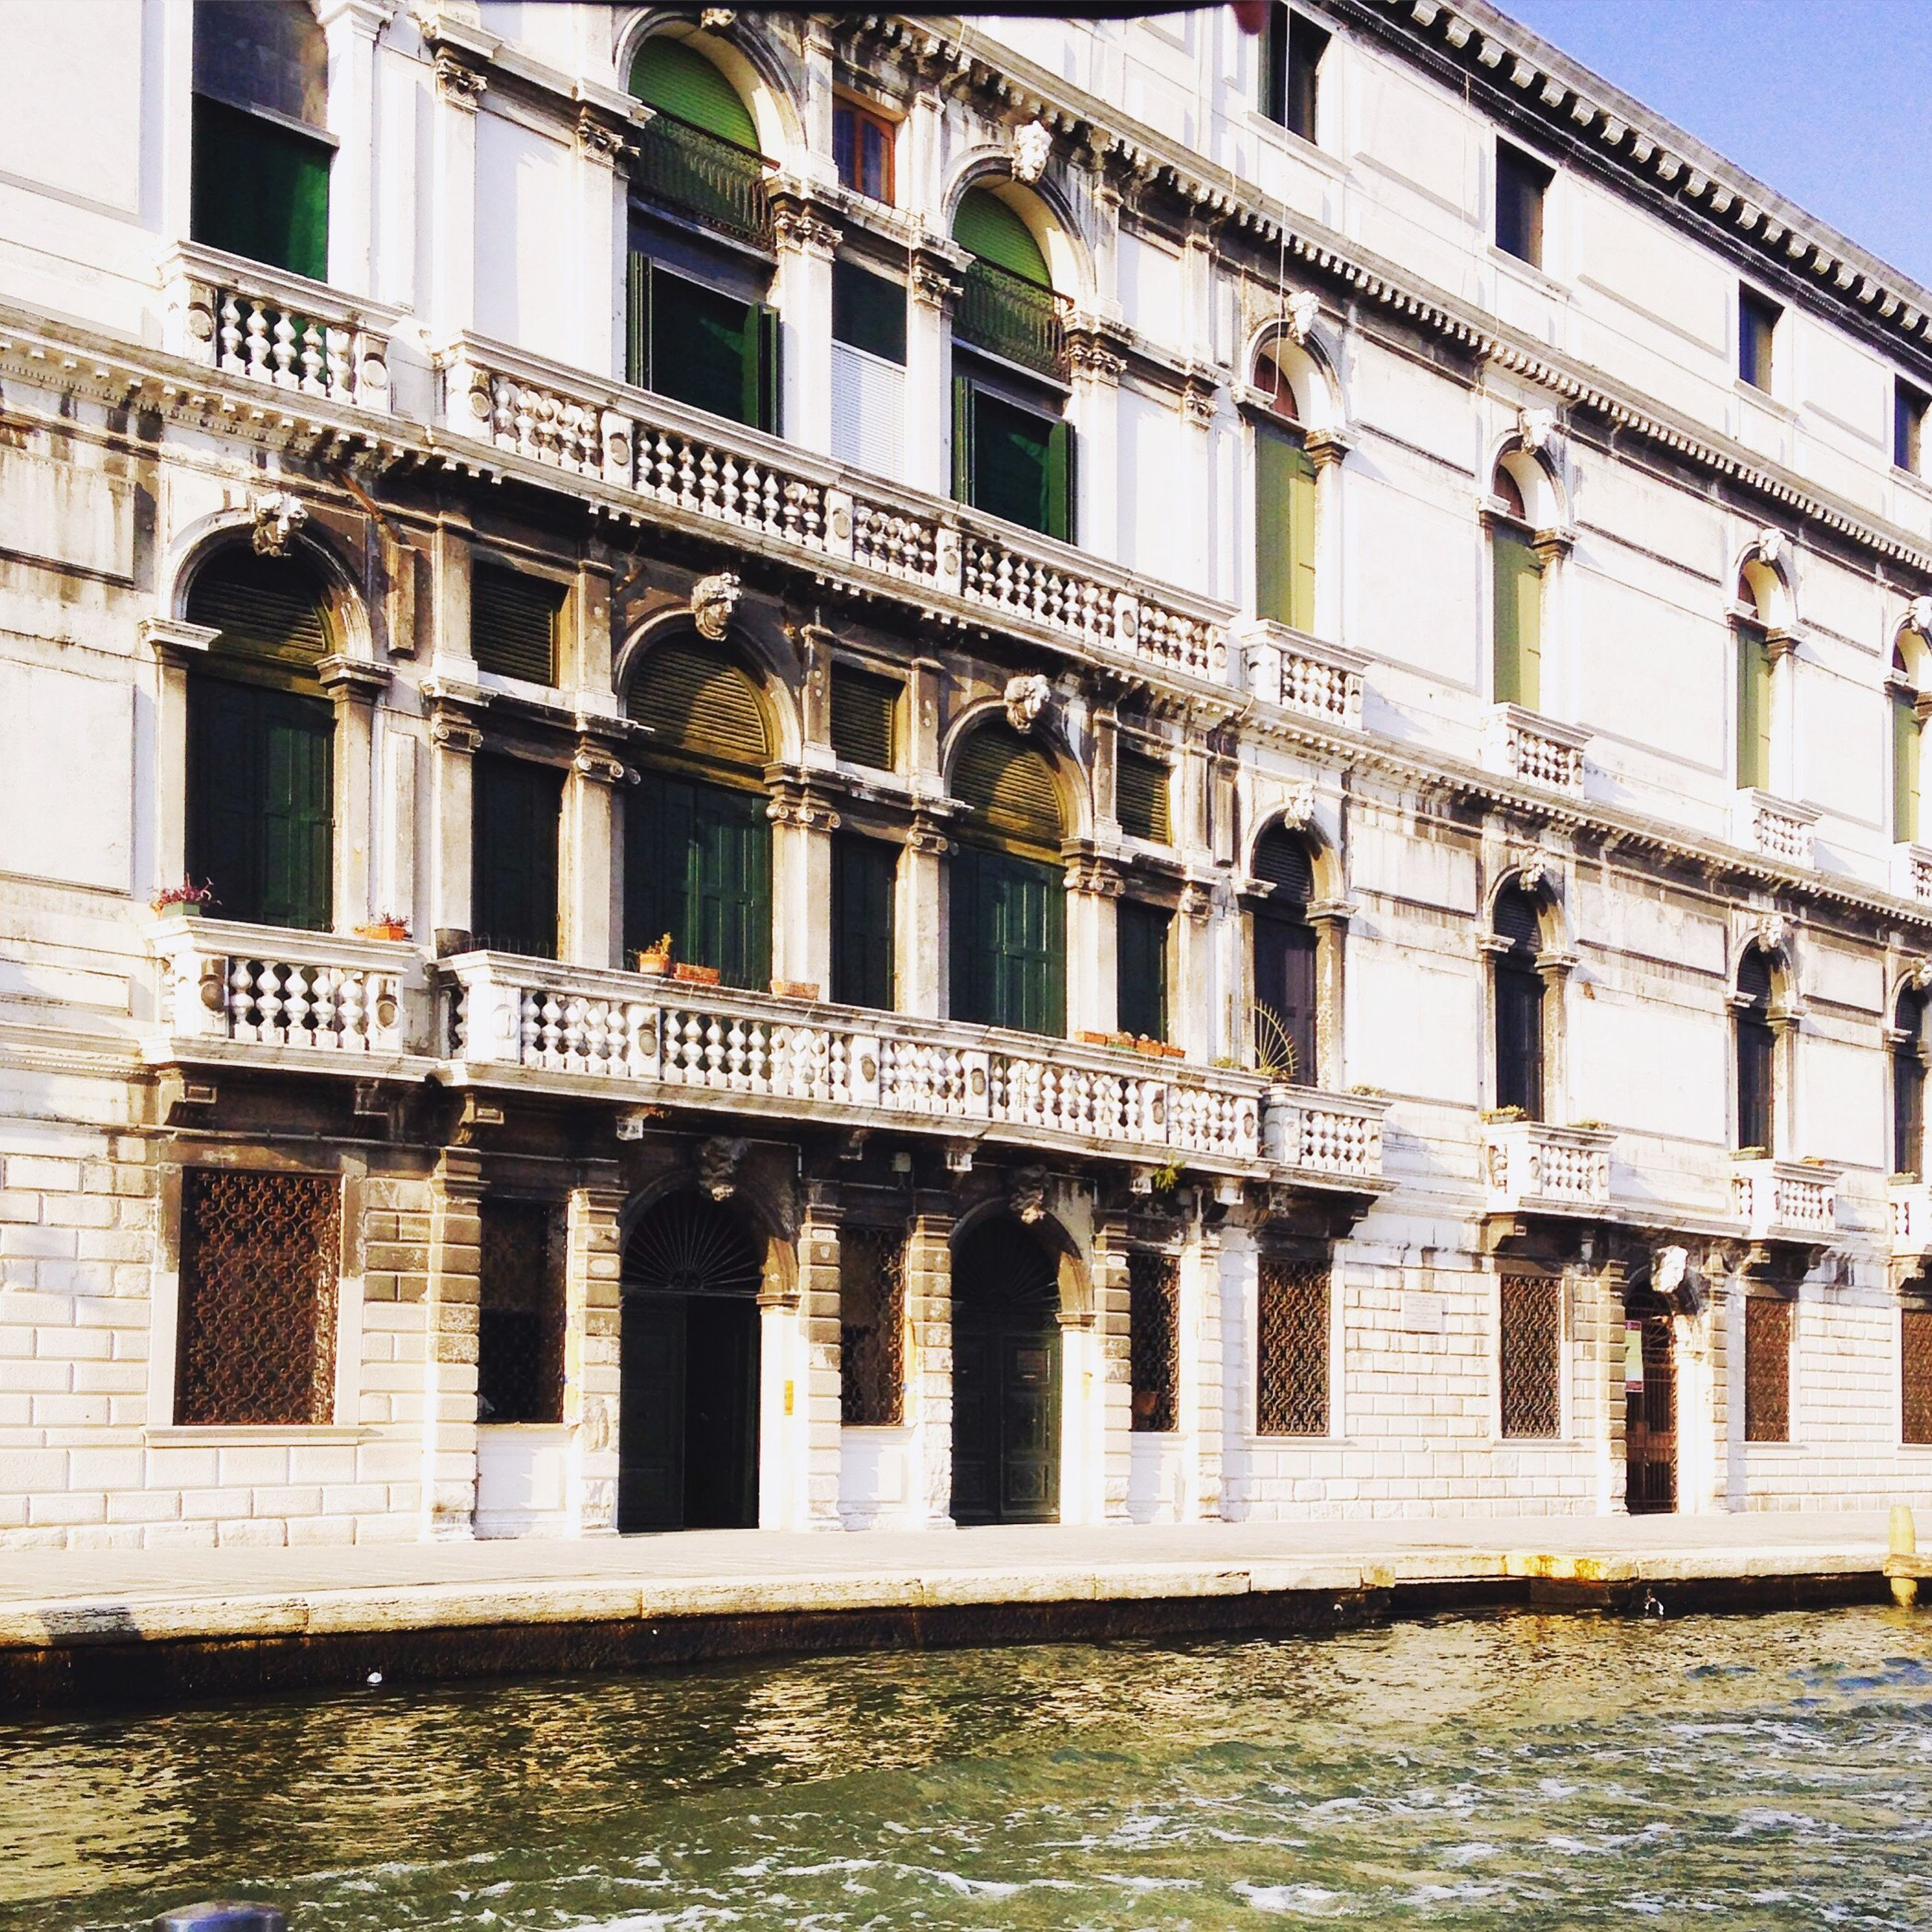 architecture, built structure, building exterior, window, balcony, water, waterfront, city, day, arch, outdoors, history, no people, architectural feature